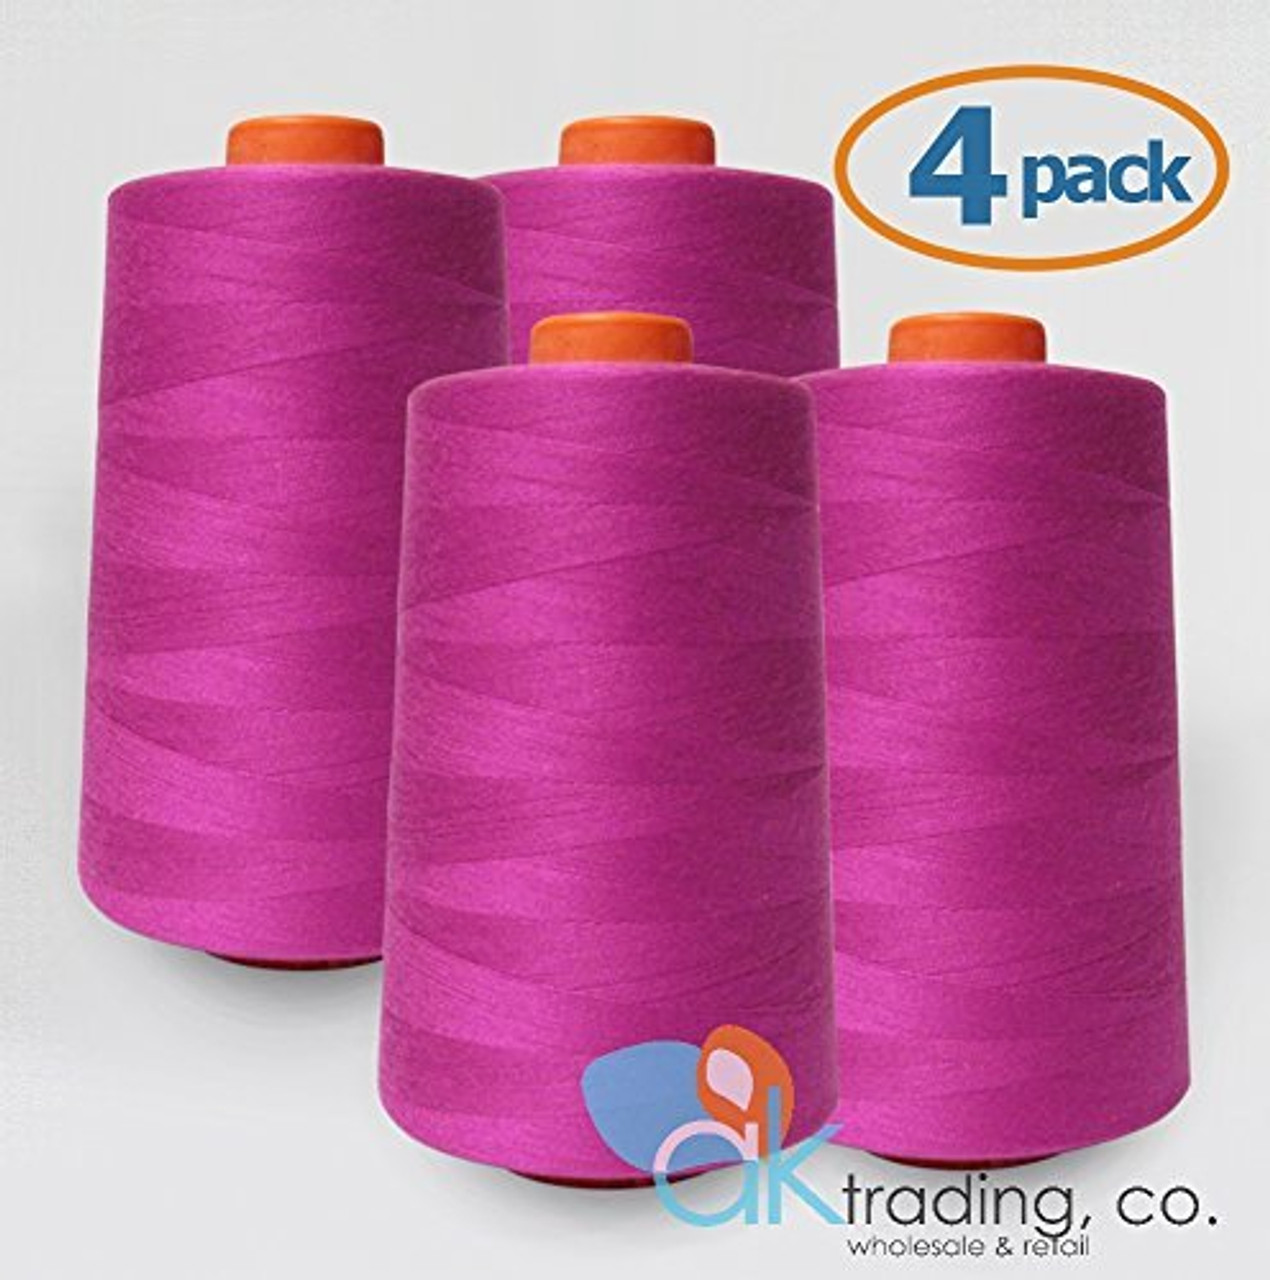 Serger yards each AK-Trading 4-Pack LIGHT GRAY Serger Cone Thread Quilting of Polyester thread for Sewing 6000